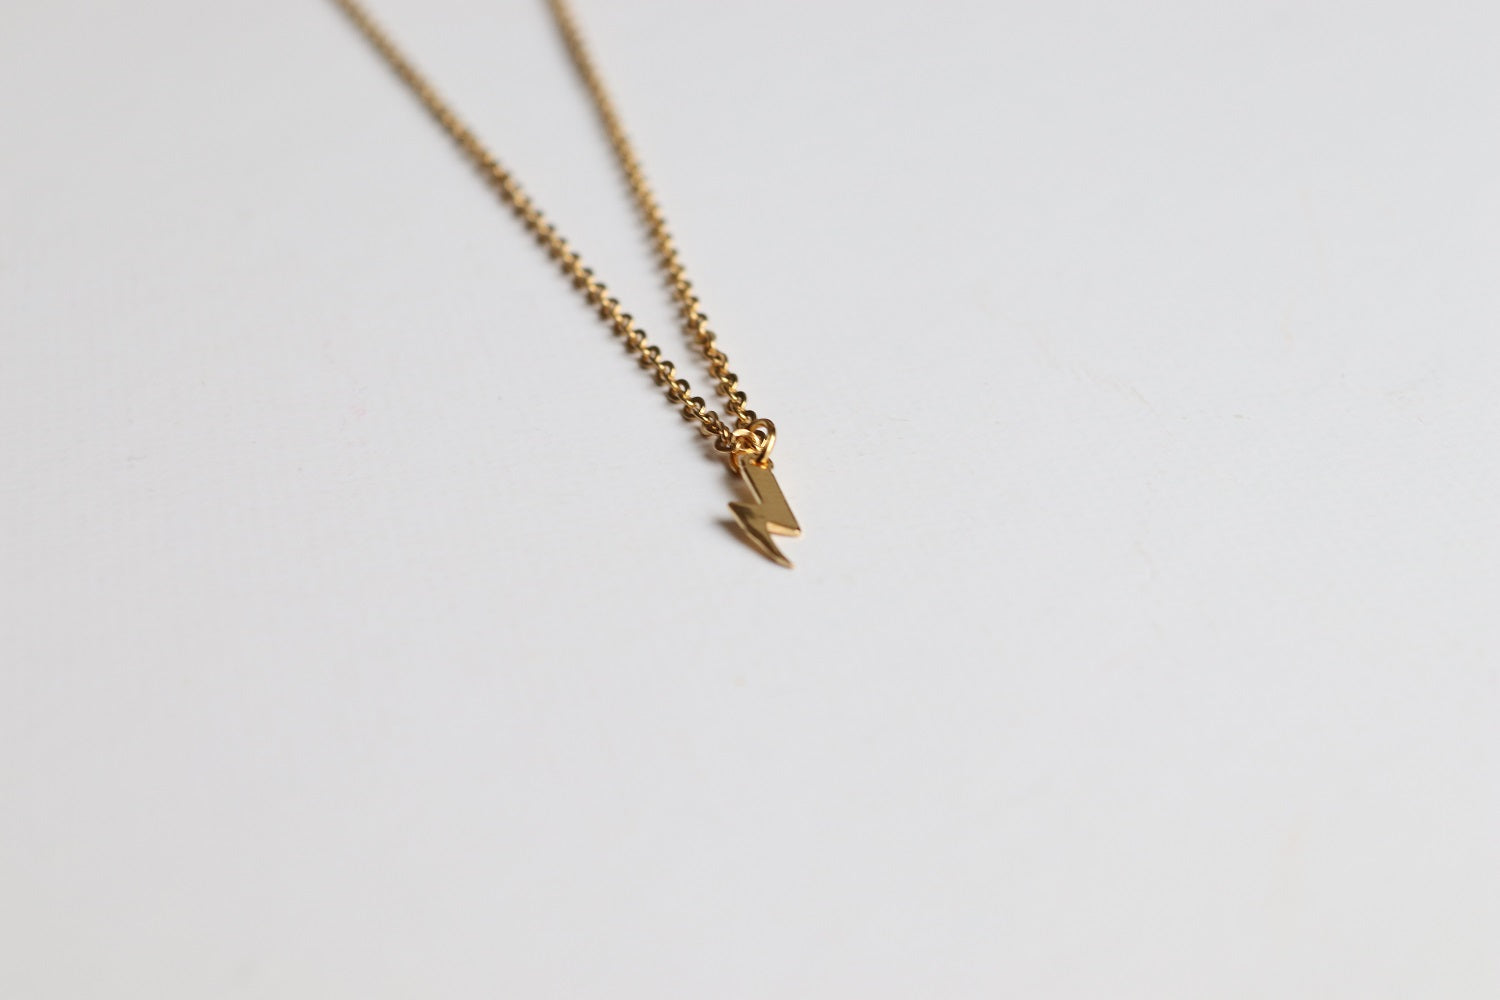 Golden Lighting Bolt necklace